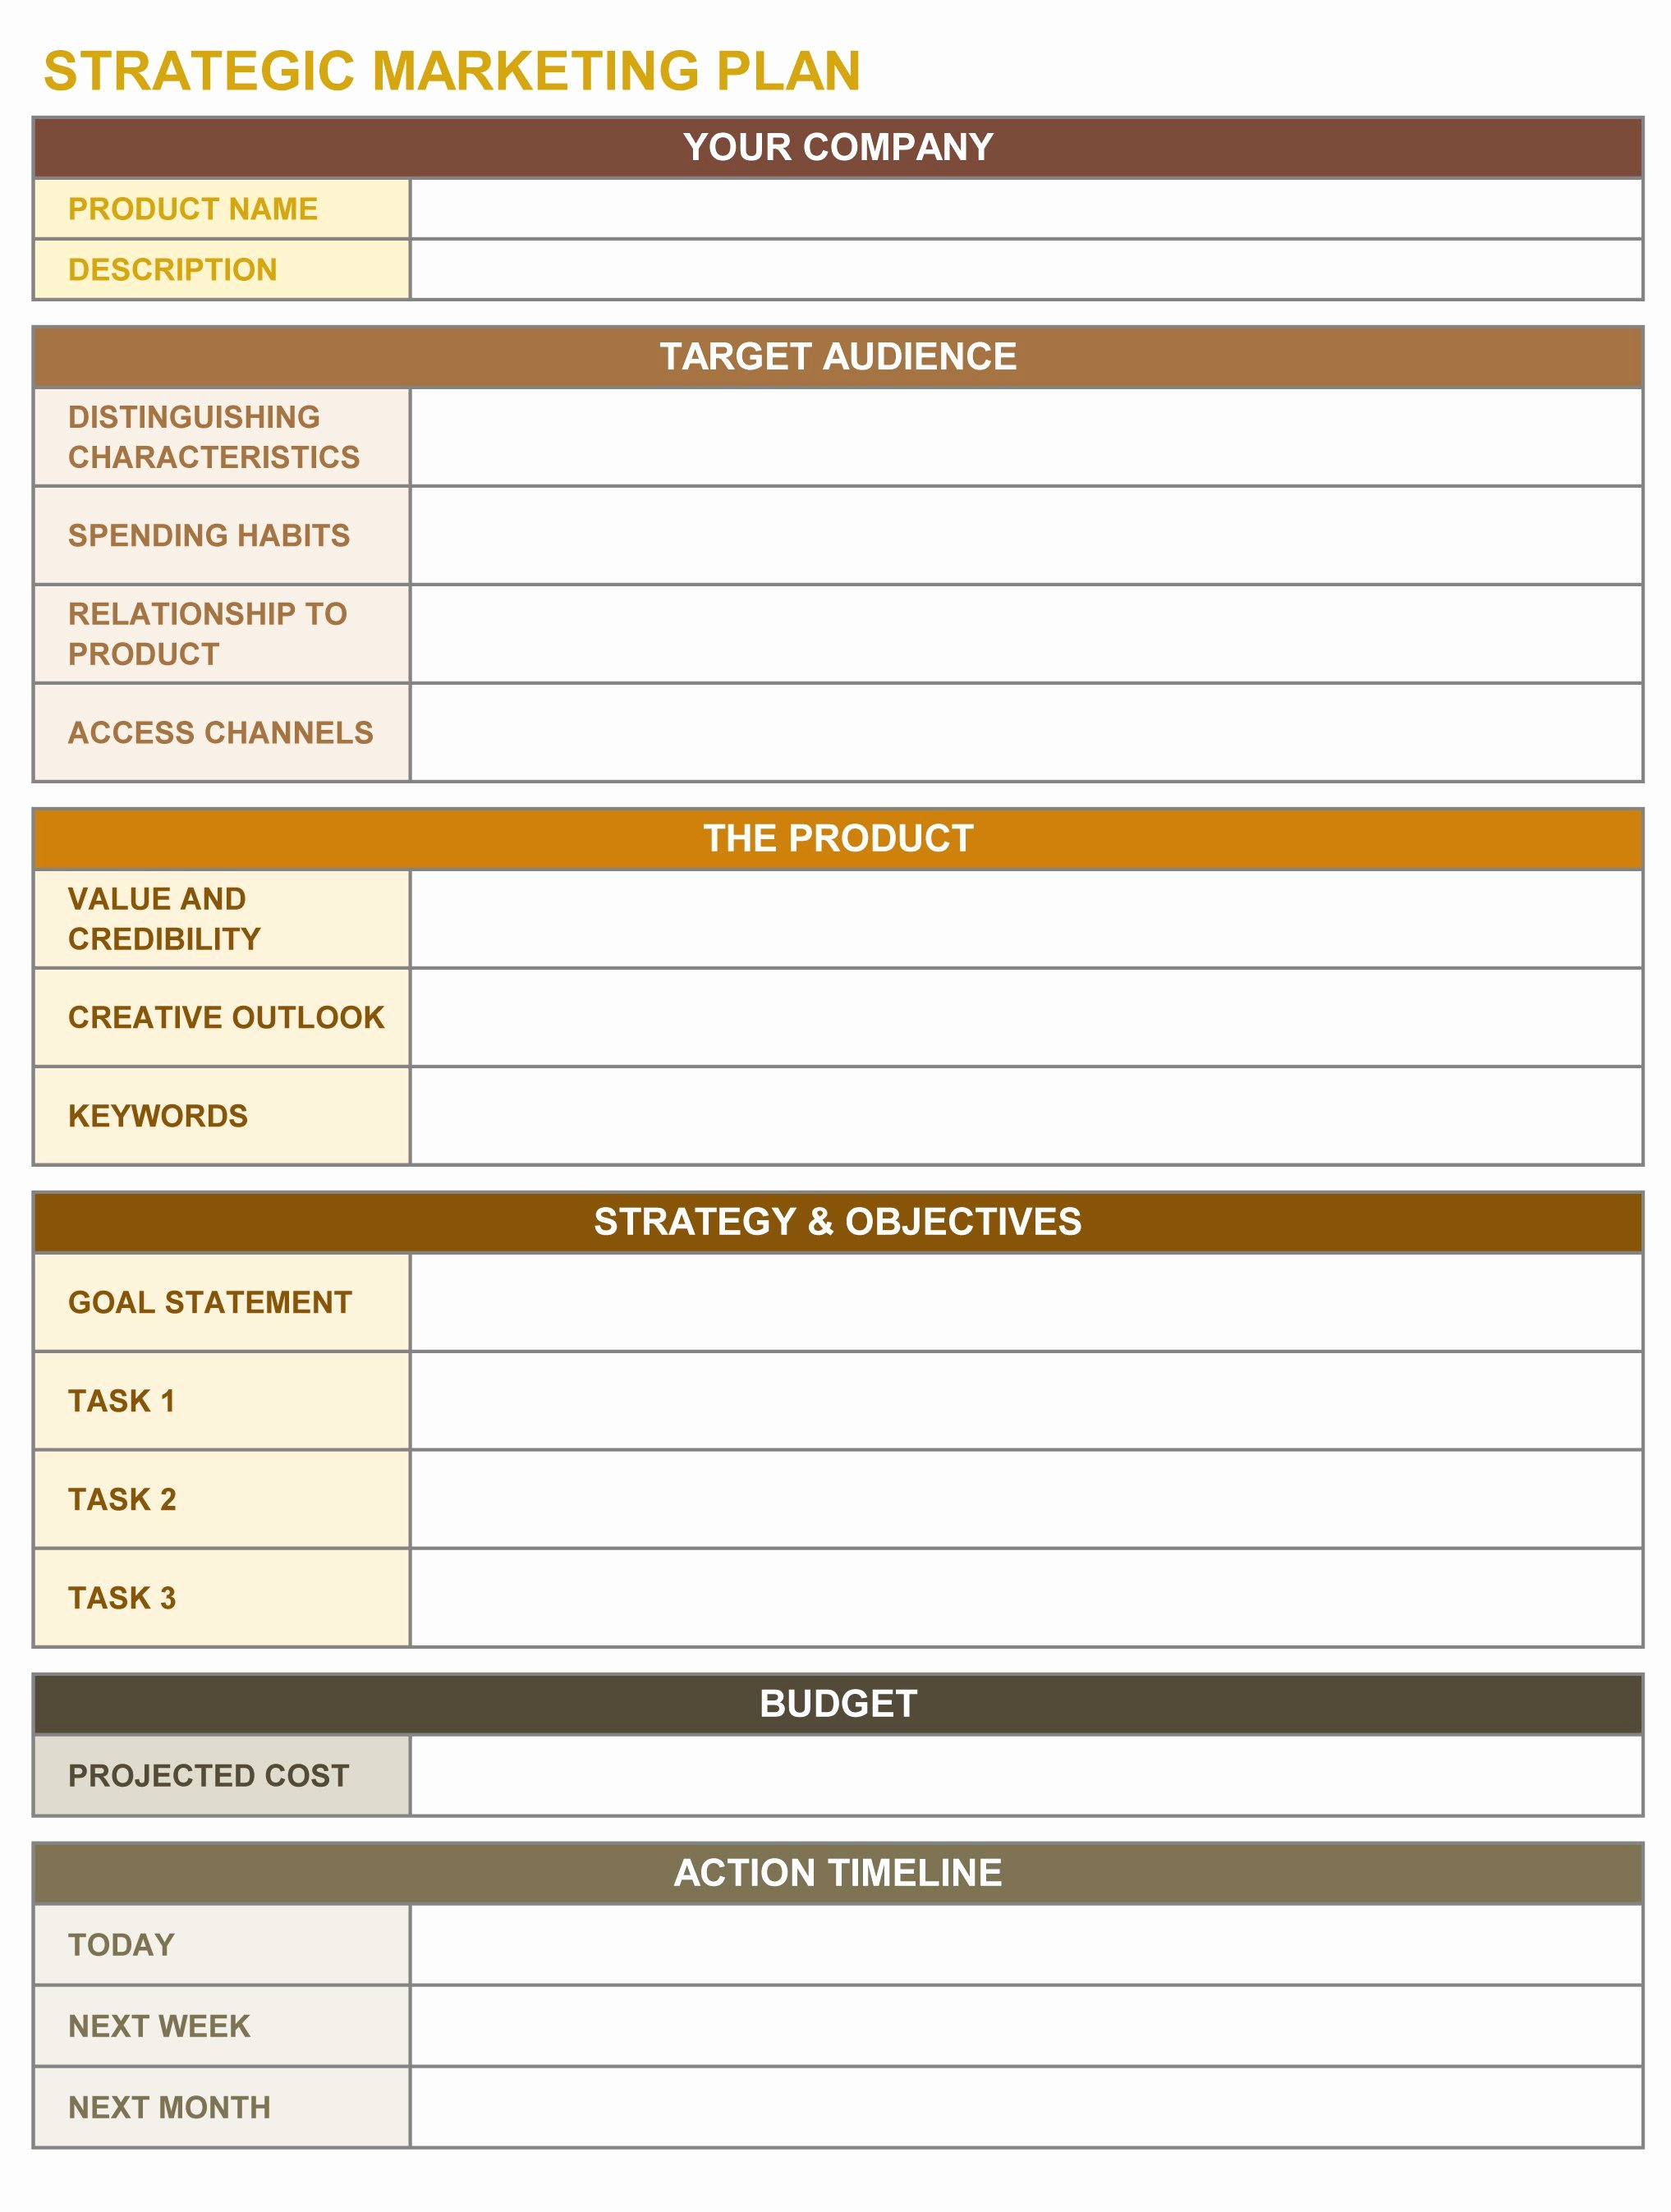 Strategic Plan Template Excel Awesome 9 Free Strategic Planning Templates Smartsheet